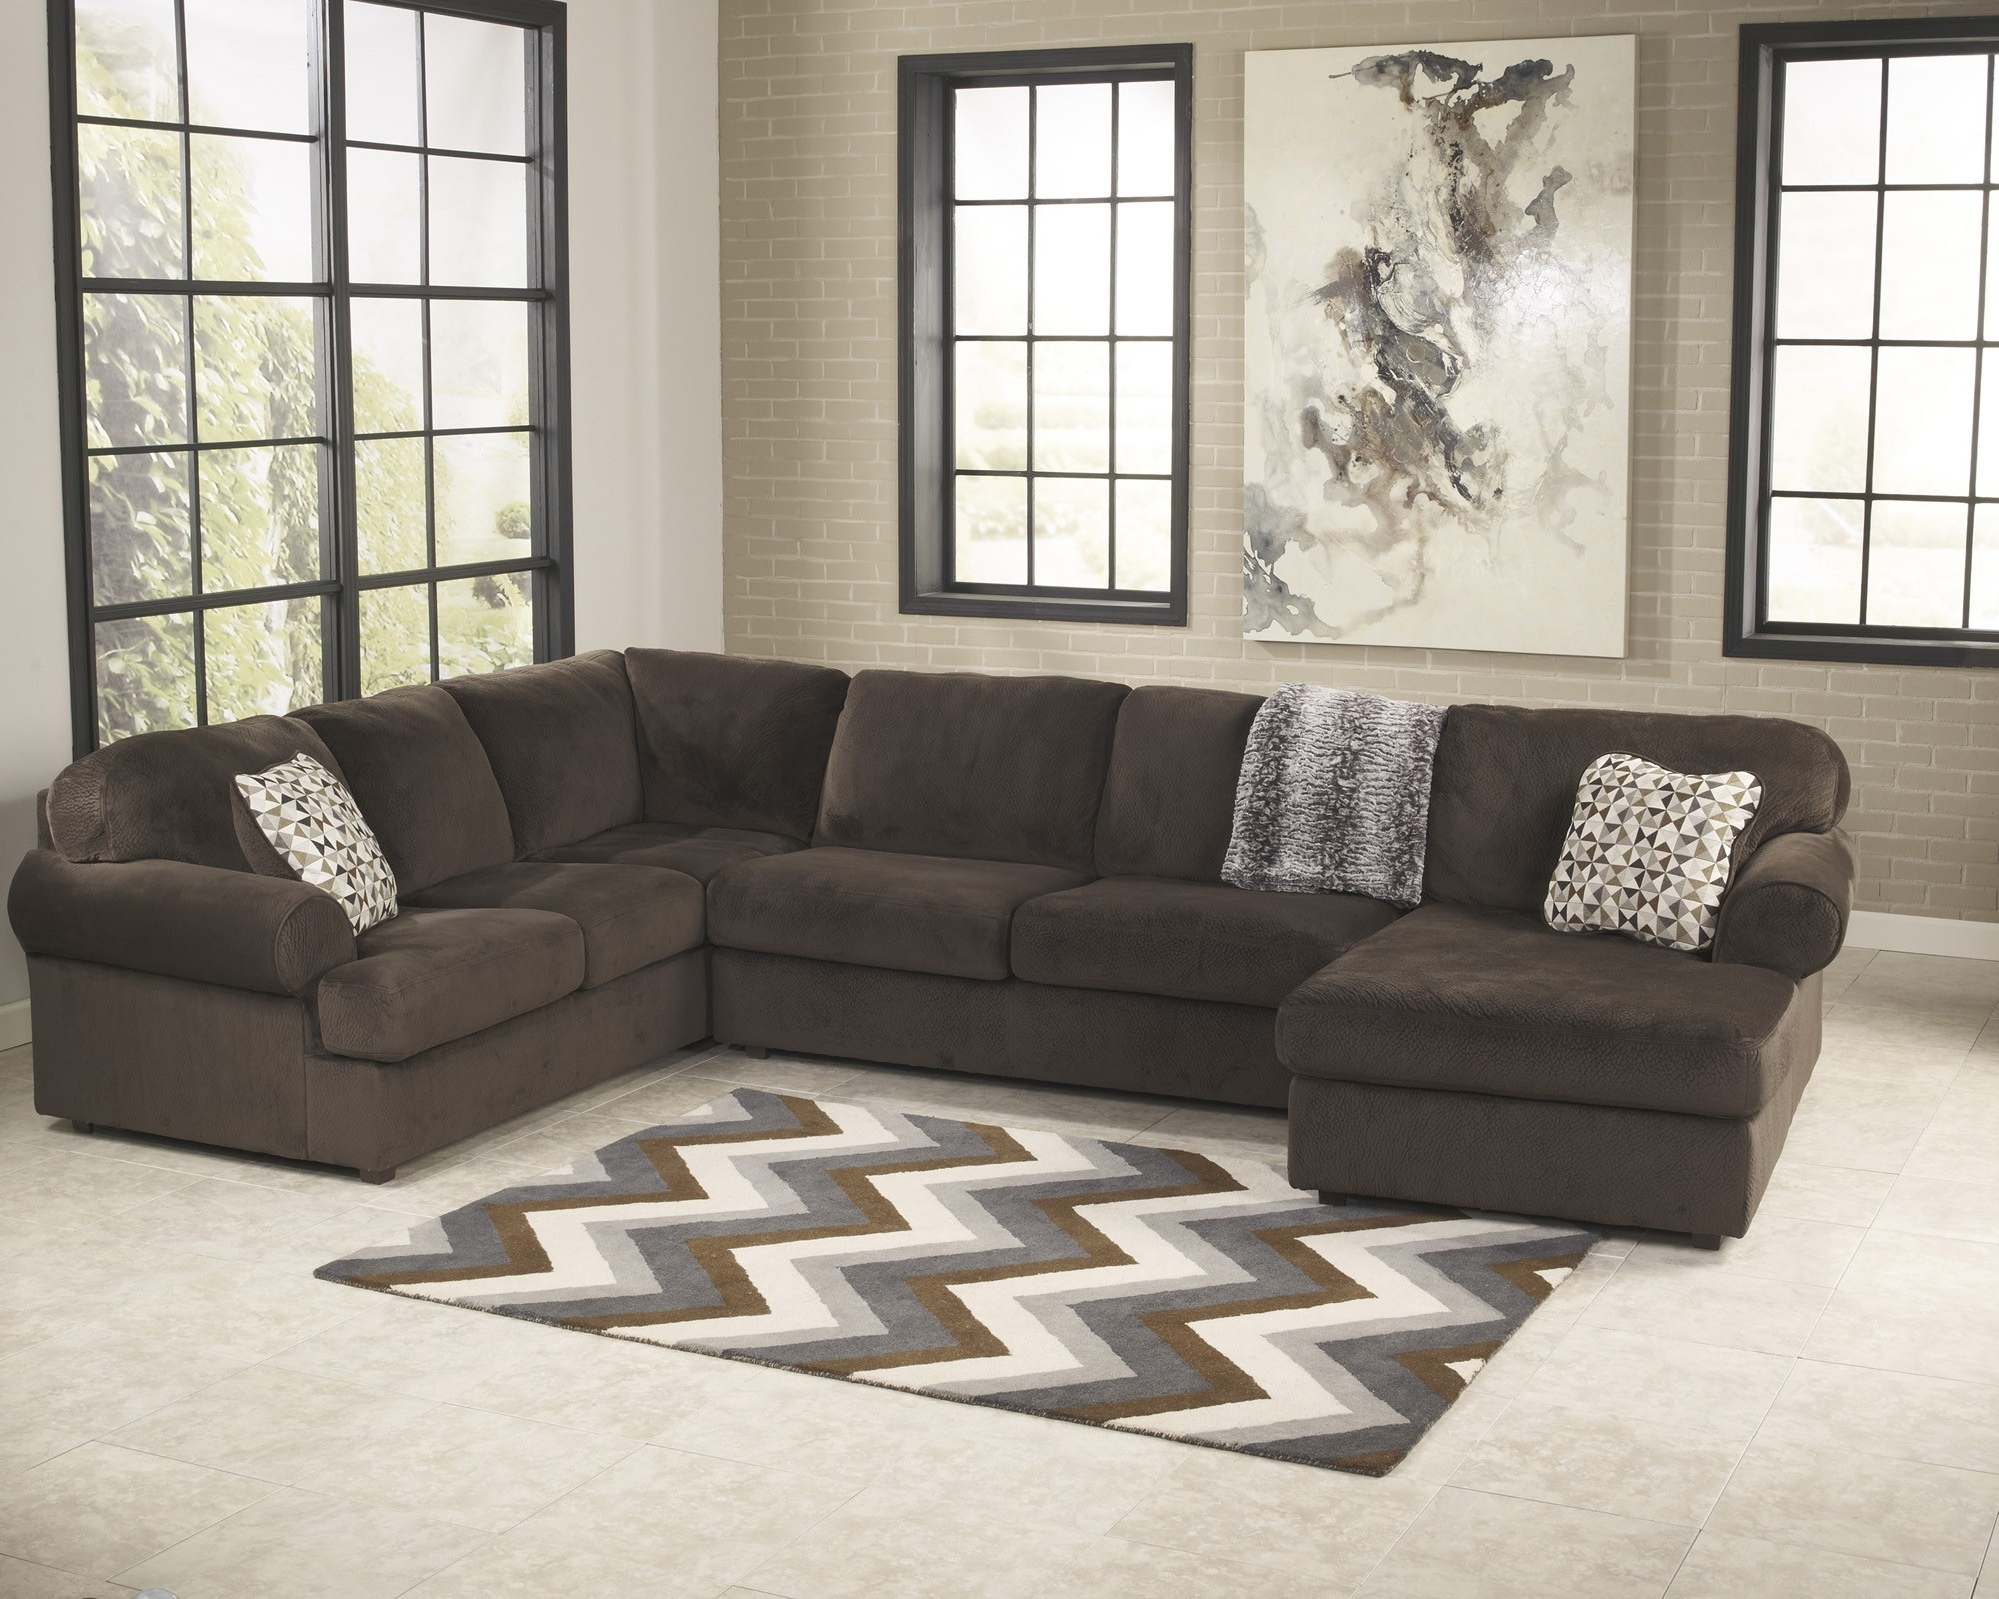 Jessa Place Chocolate 3 Piece Sectional Sofa For $ (View 3 of 15)